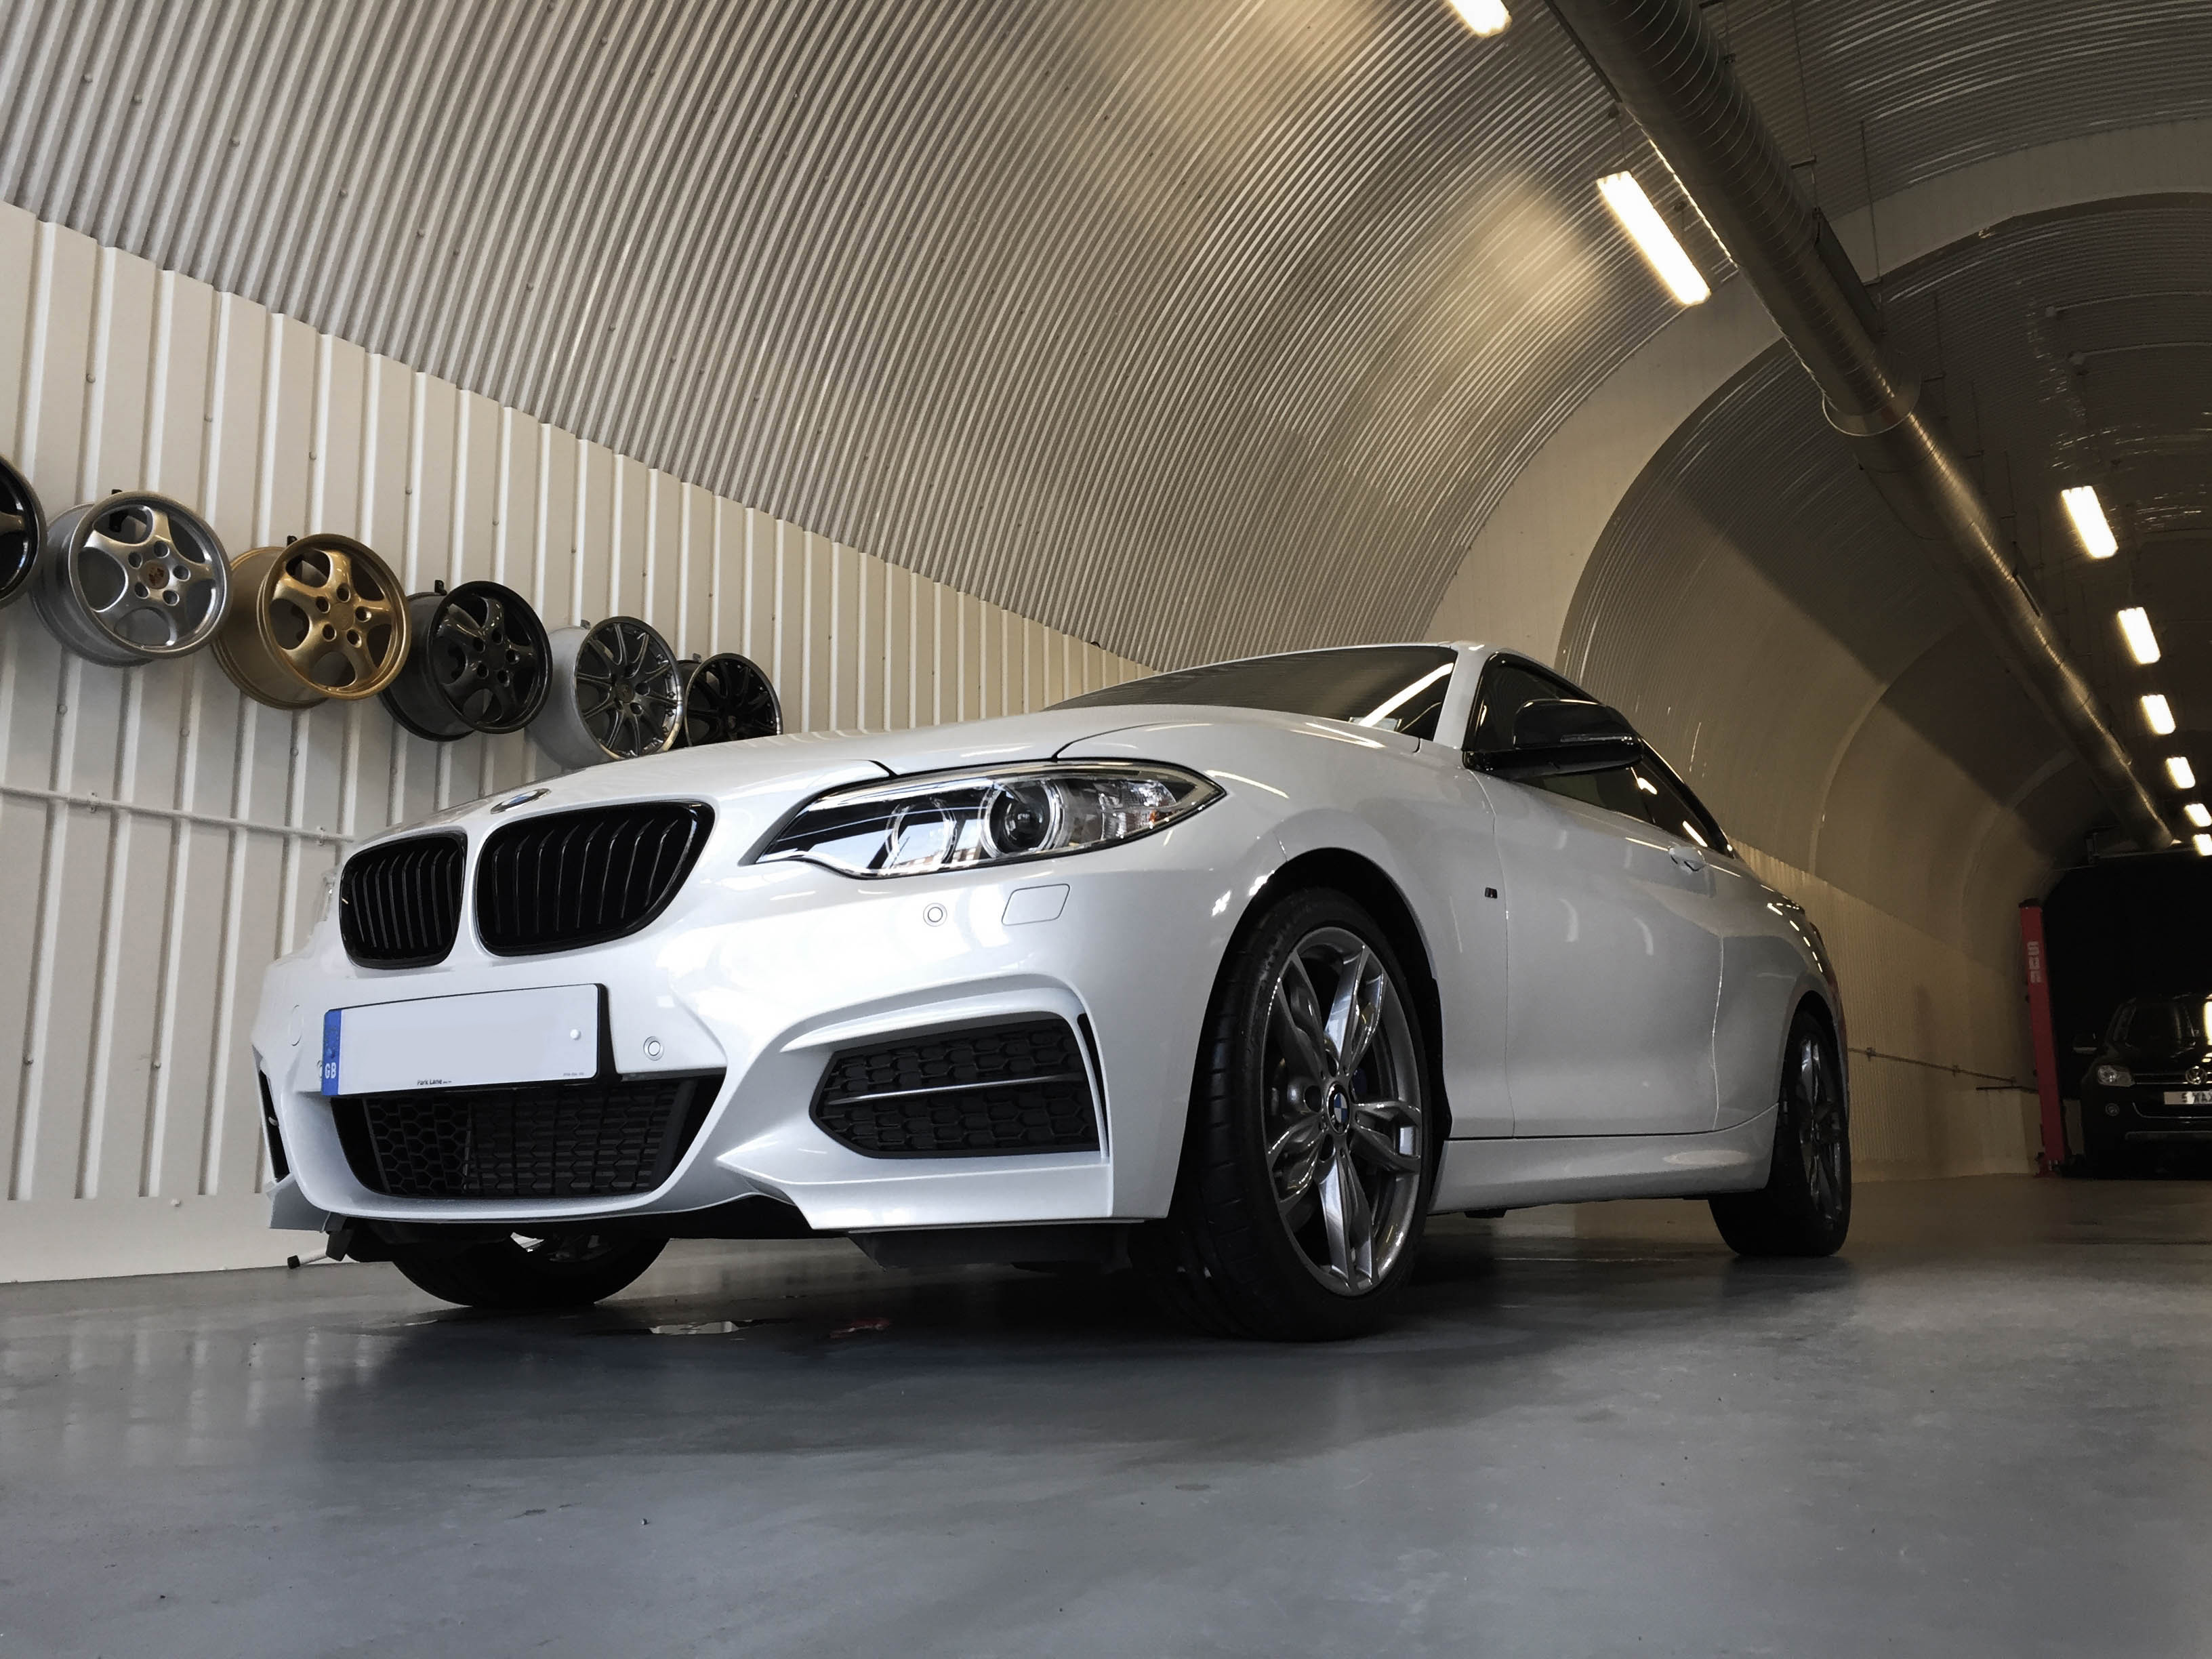 BMW-2series-front-lowangle